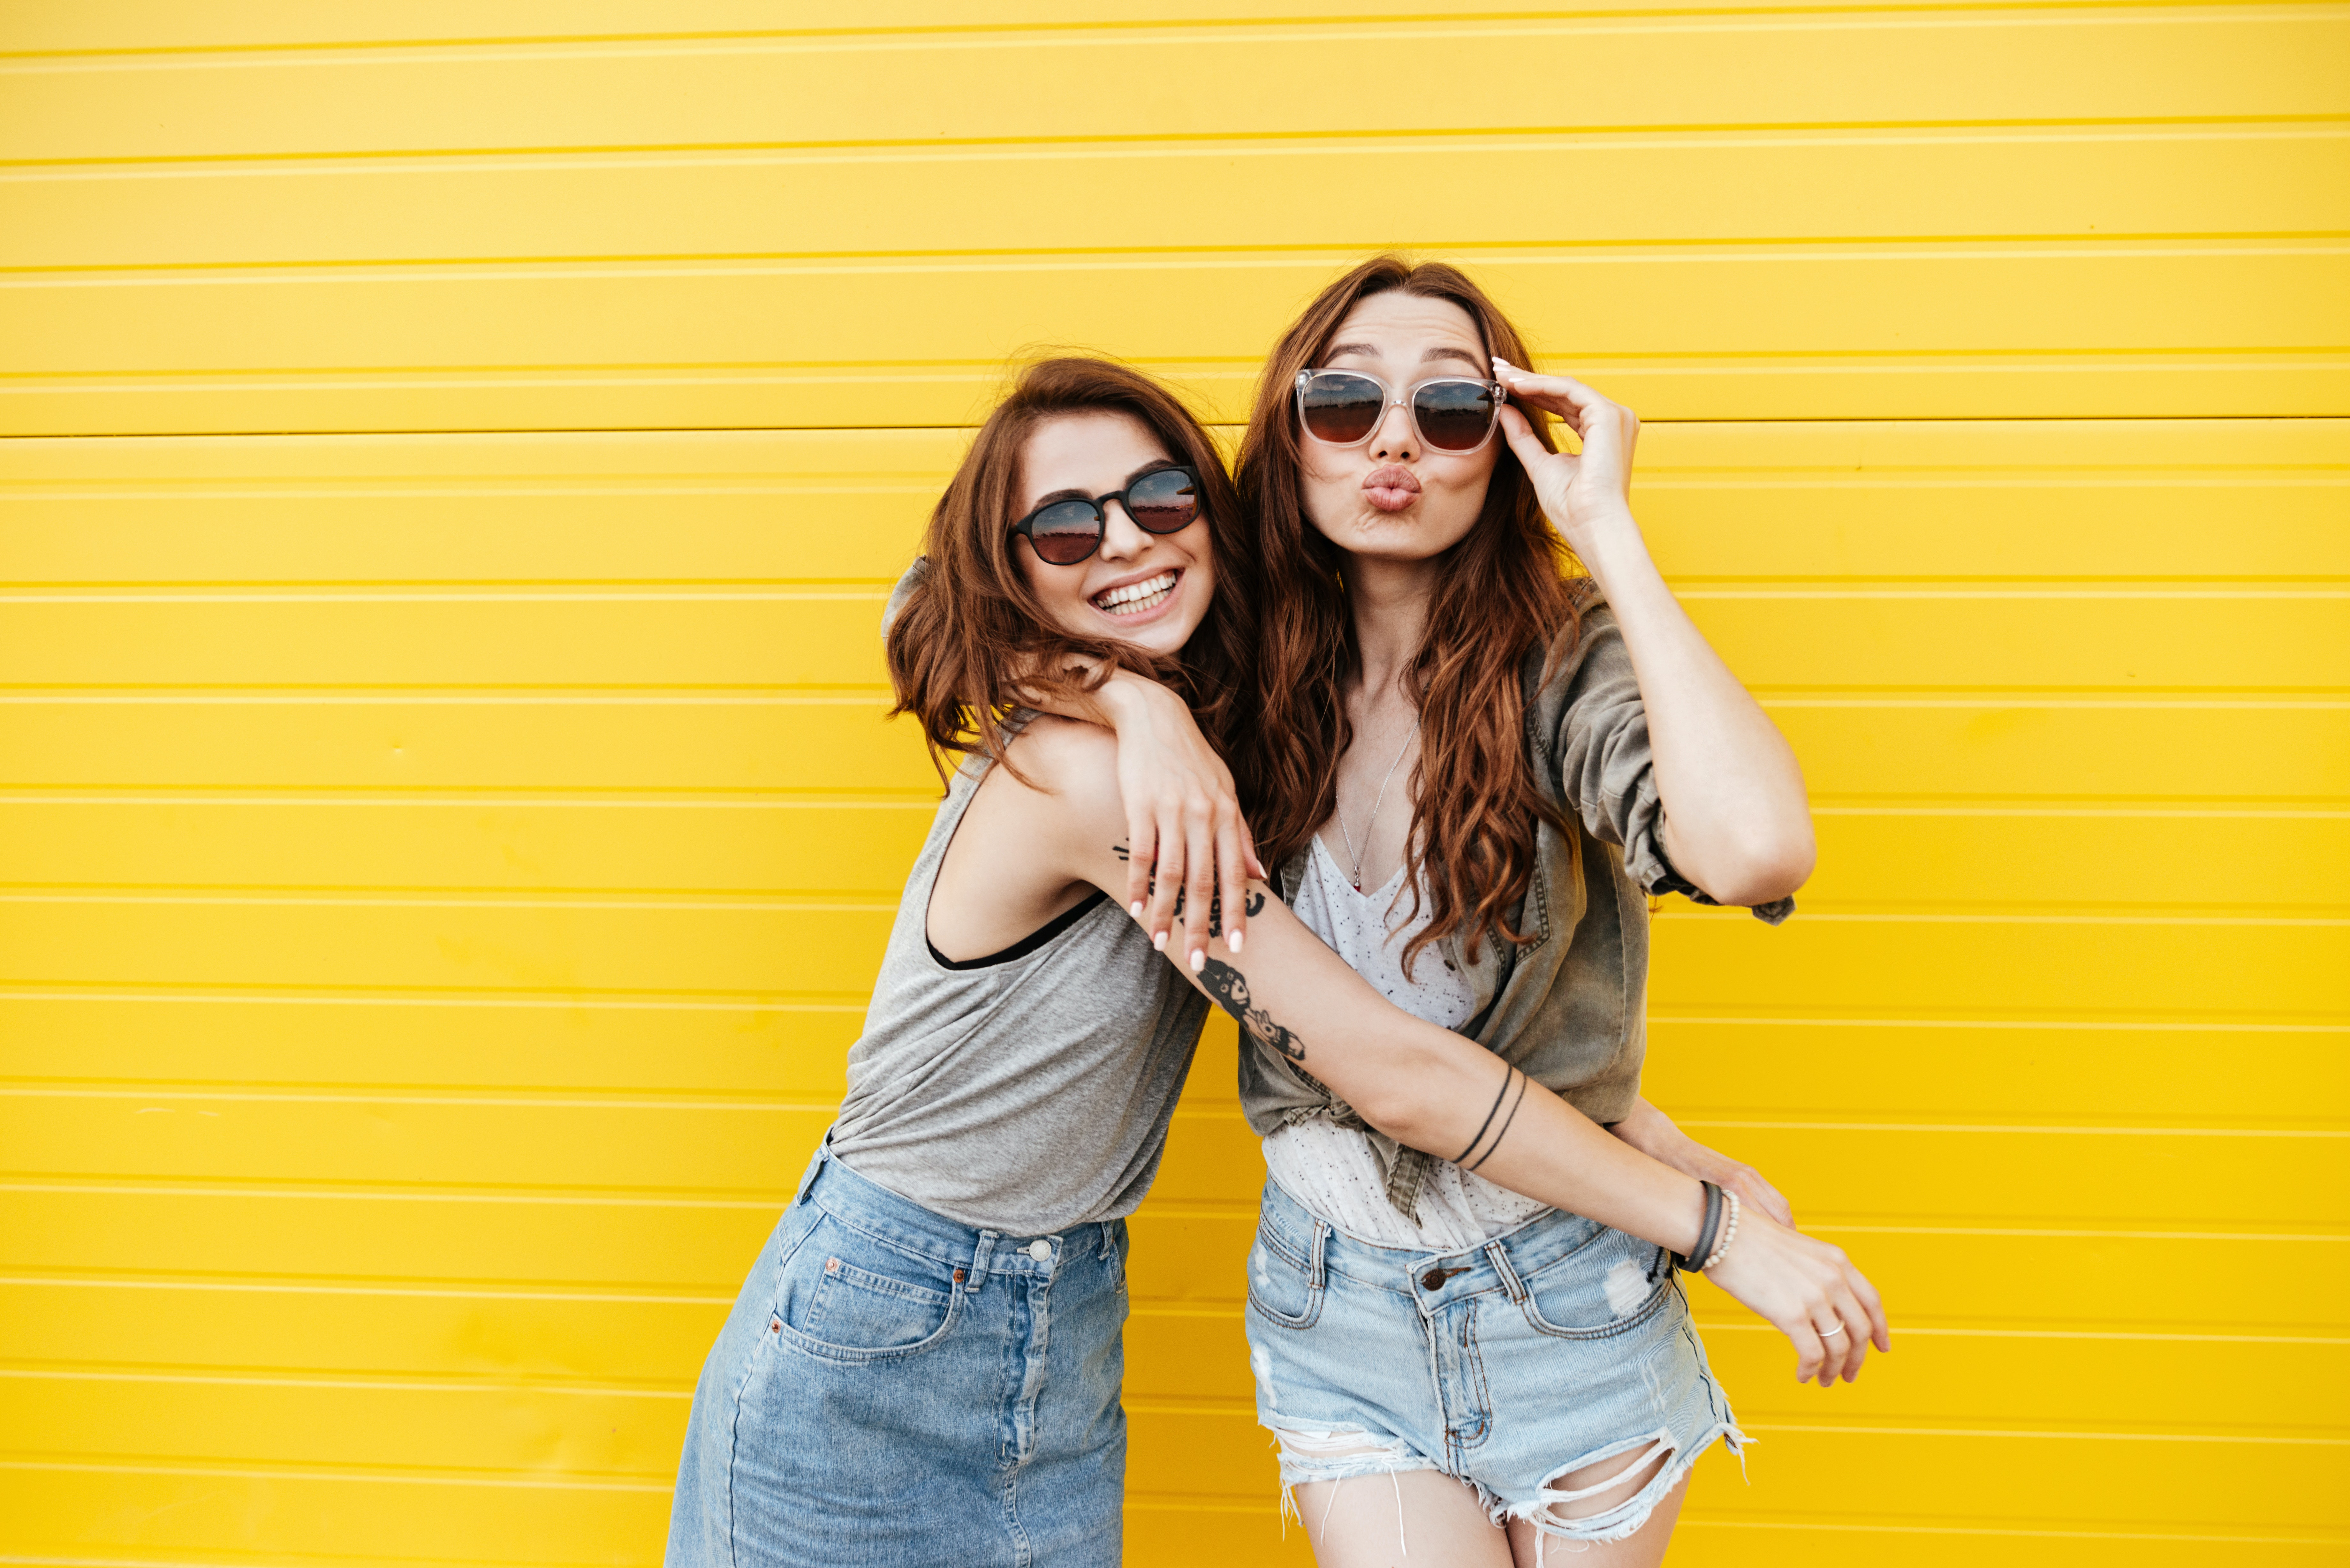 The Quality That Makes You A Good Friend, According To Your